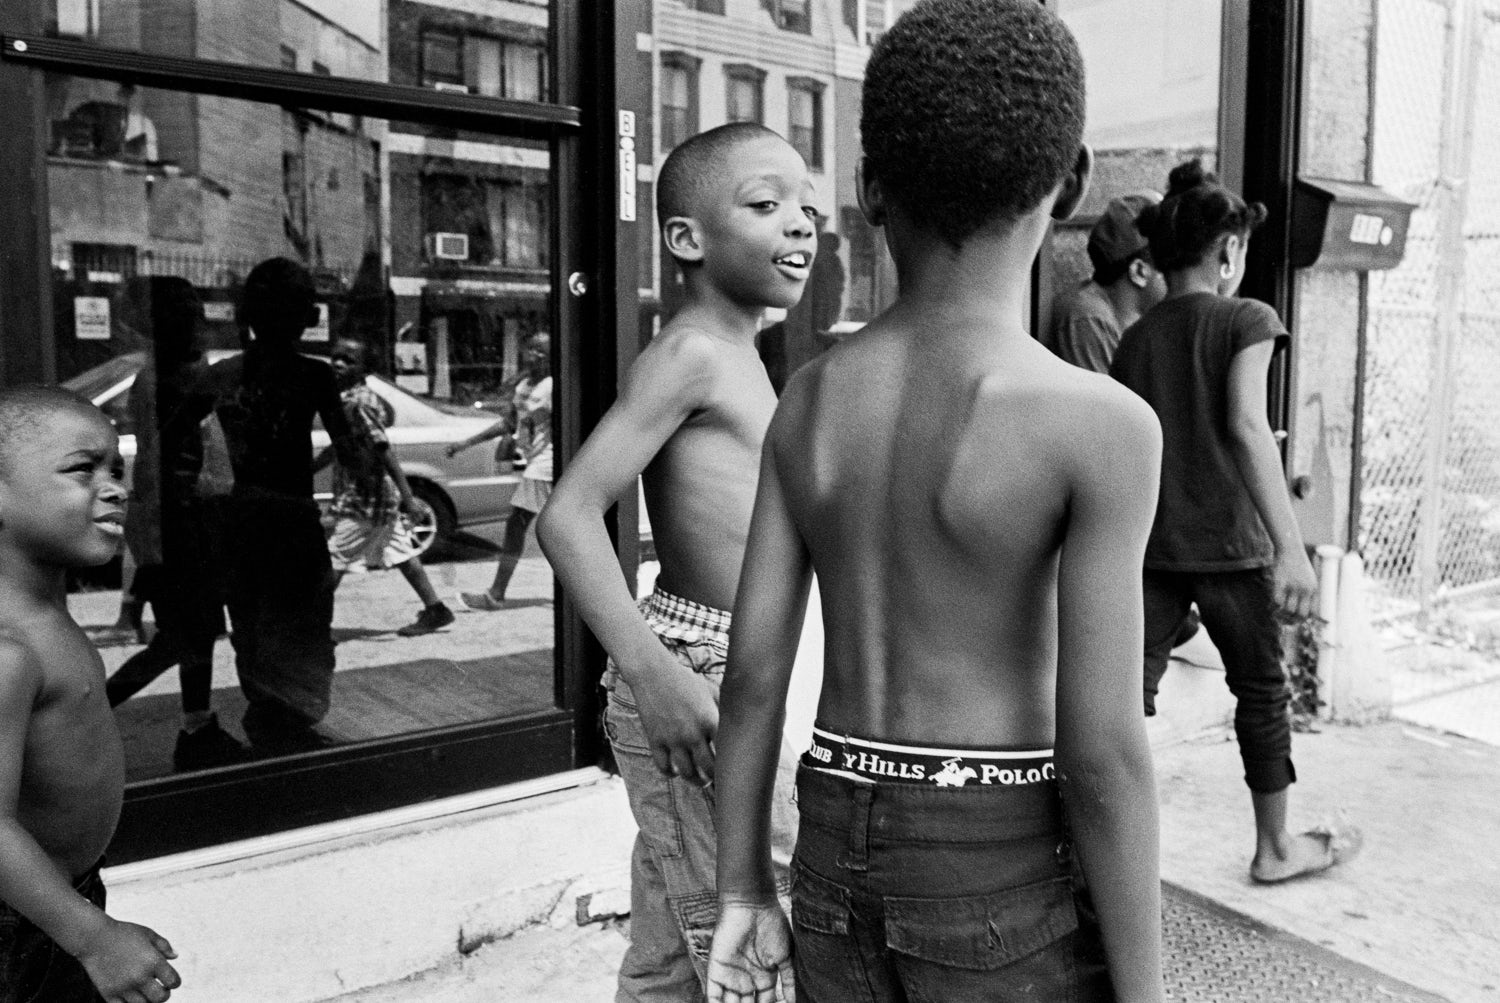 A photograph of two children by Andre D Wagner